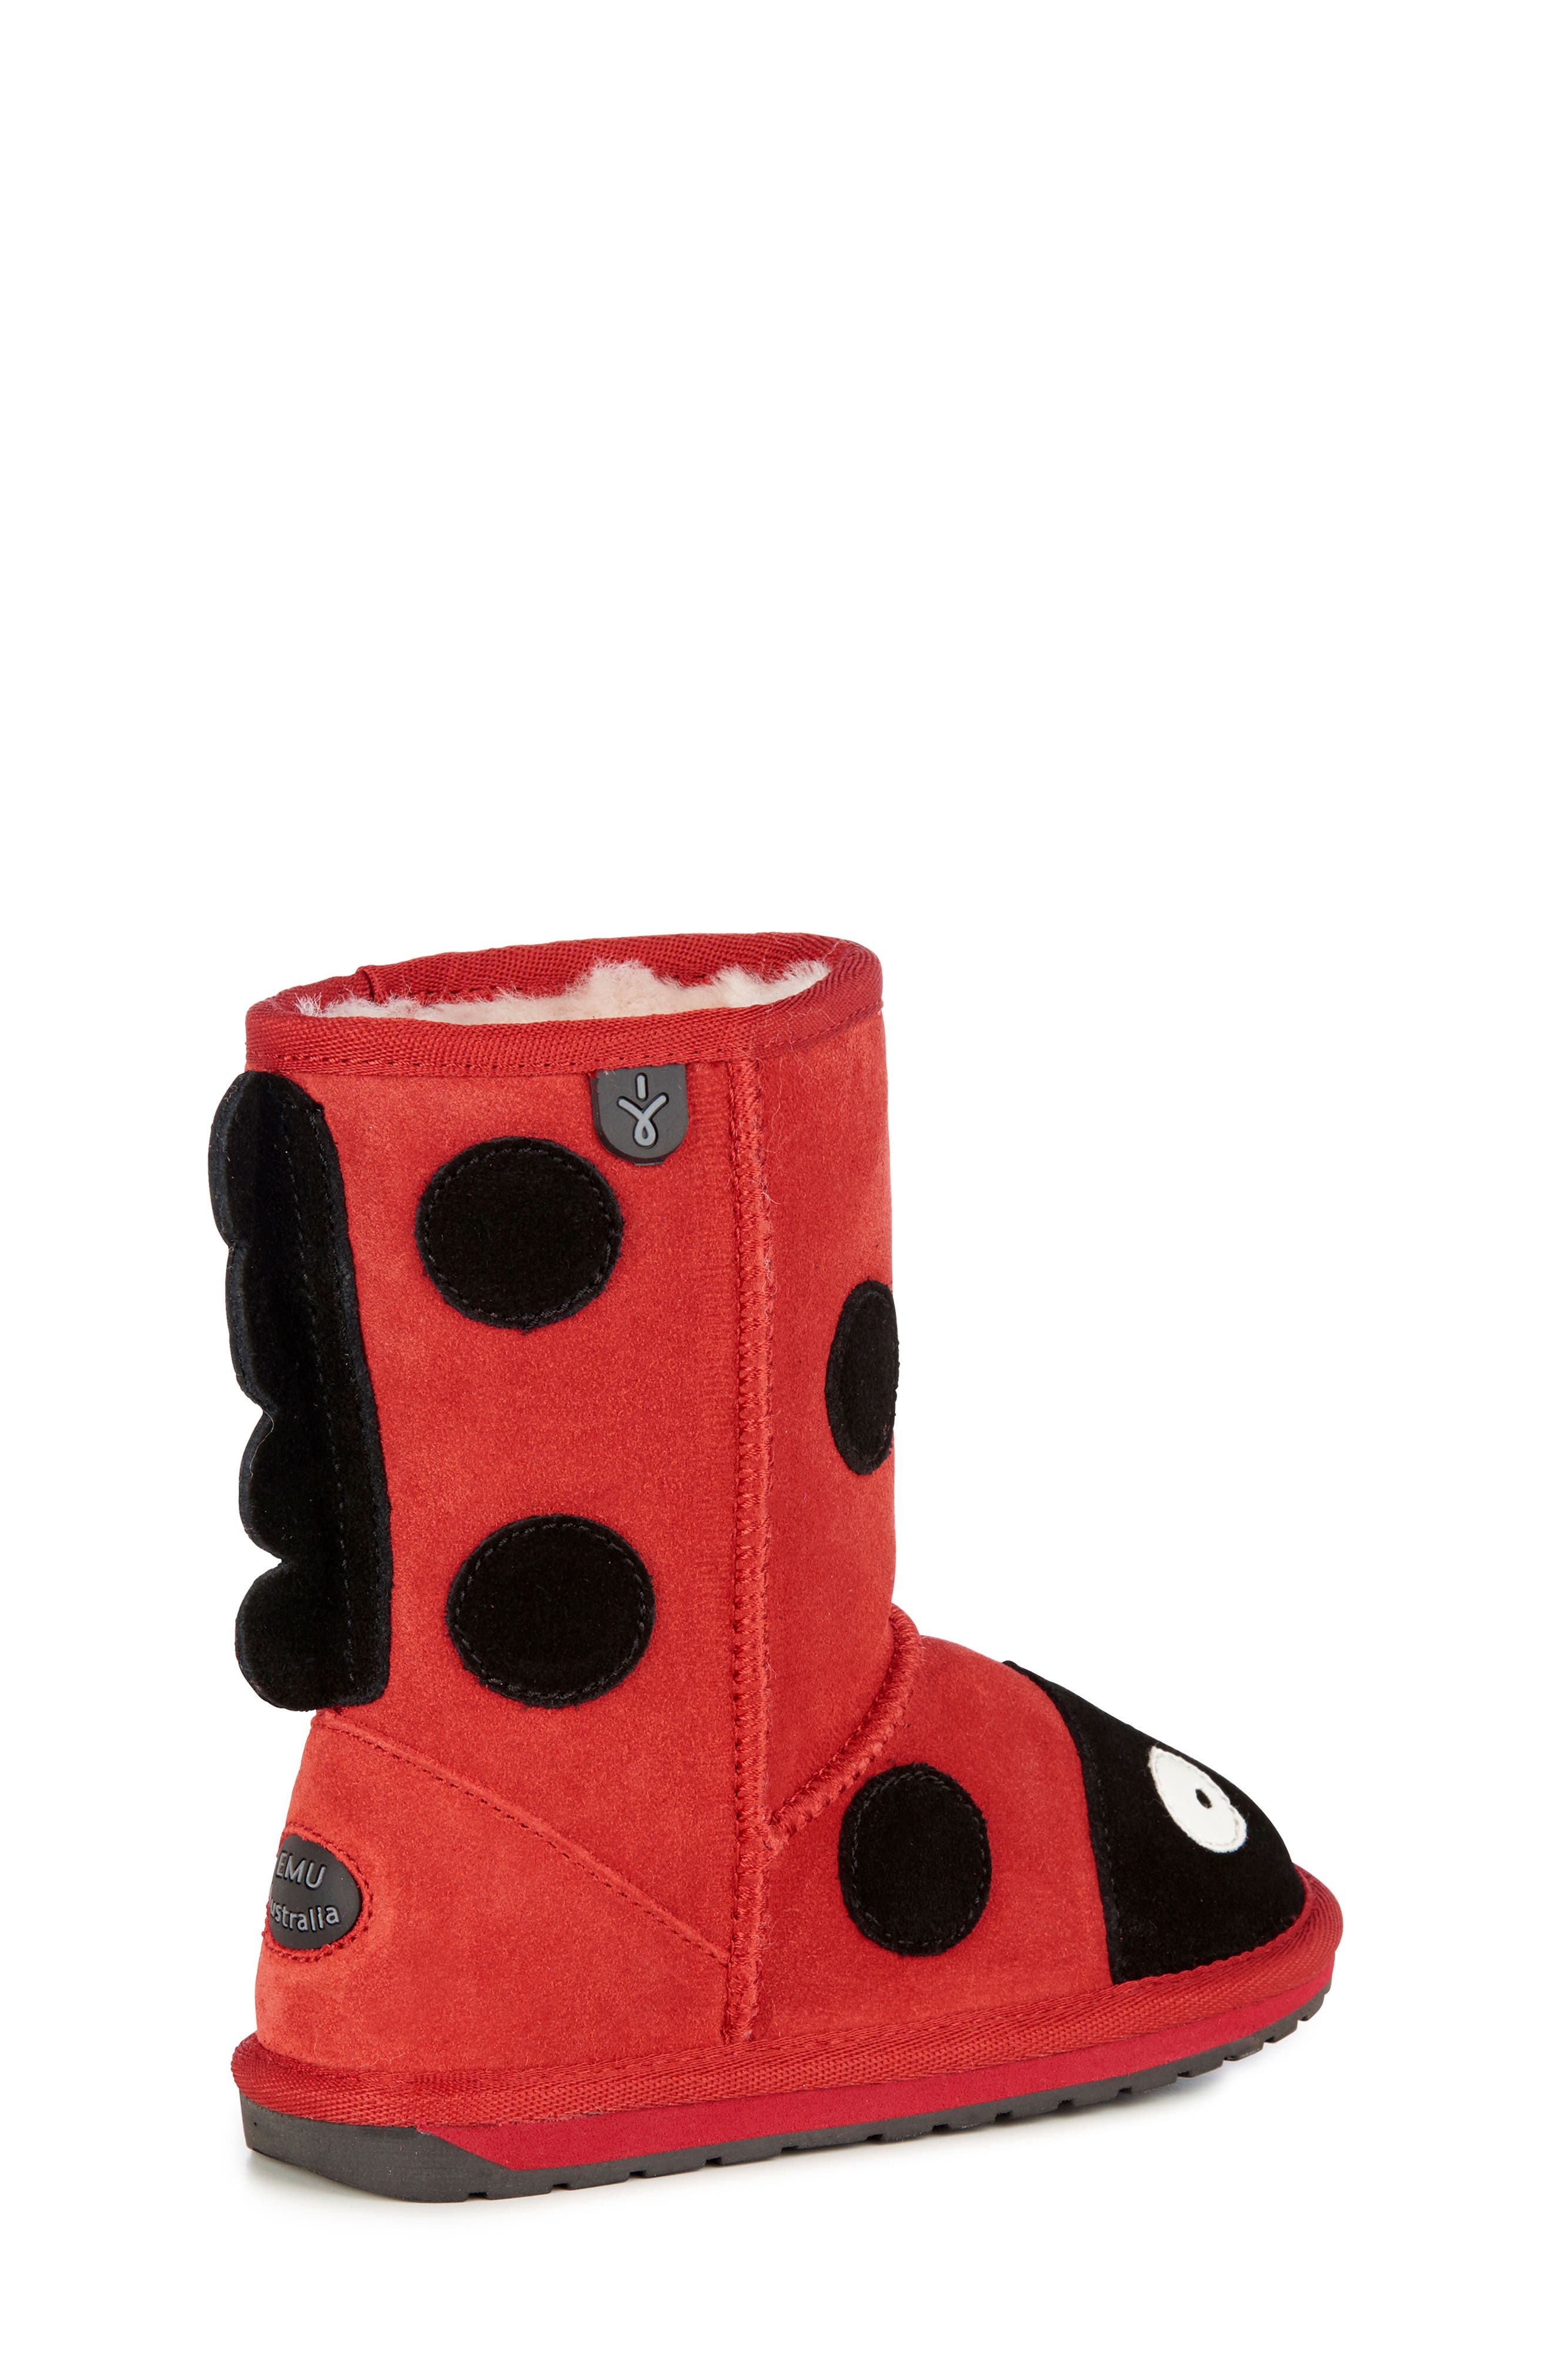 Little Creatures - Ladybug Boot,                             Alternate thumbnail 10, color,                             RED